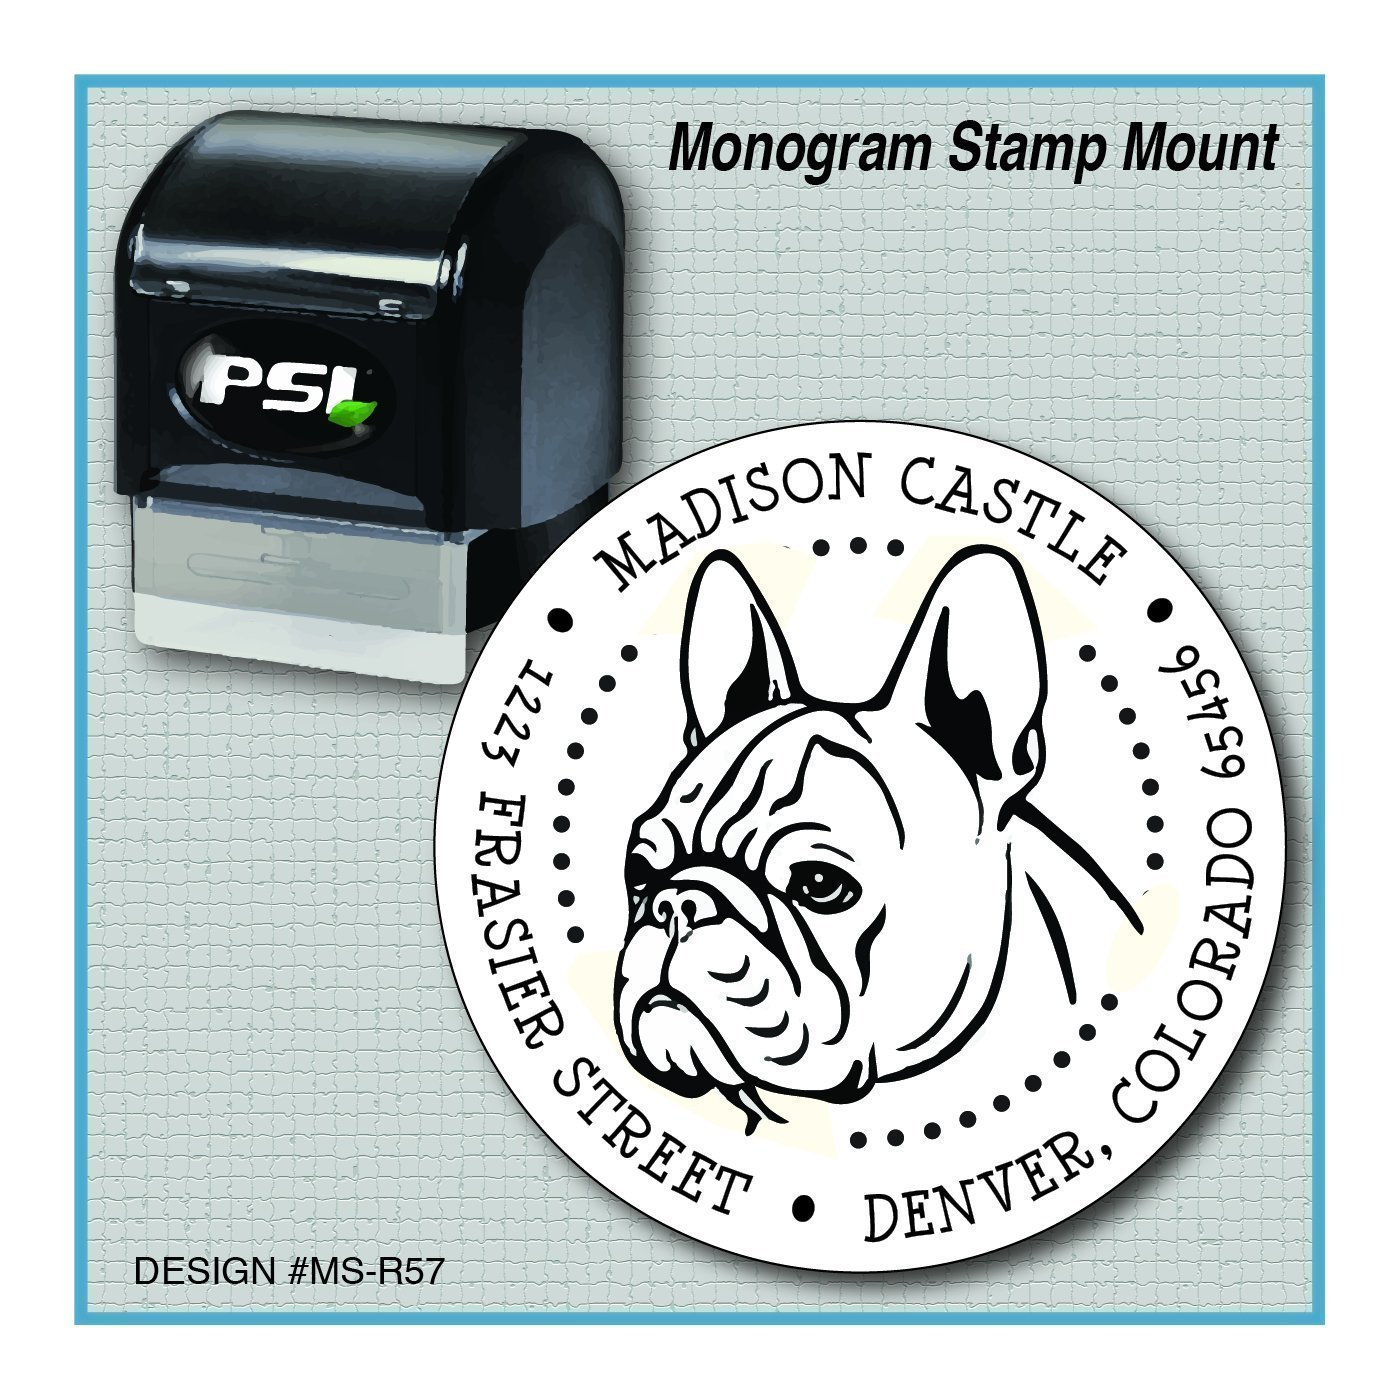 French Bulldog Return Address Monogram Stamp | Frenchie | Bouledogue Français | MS-R57